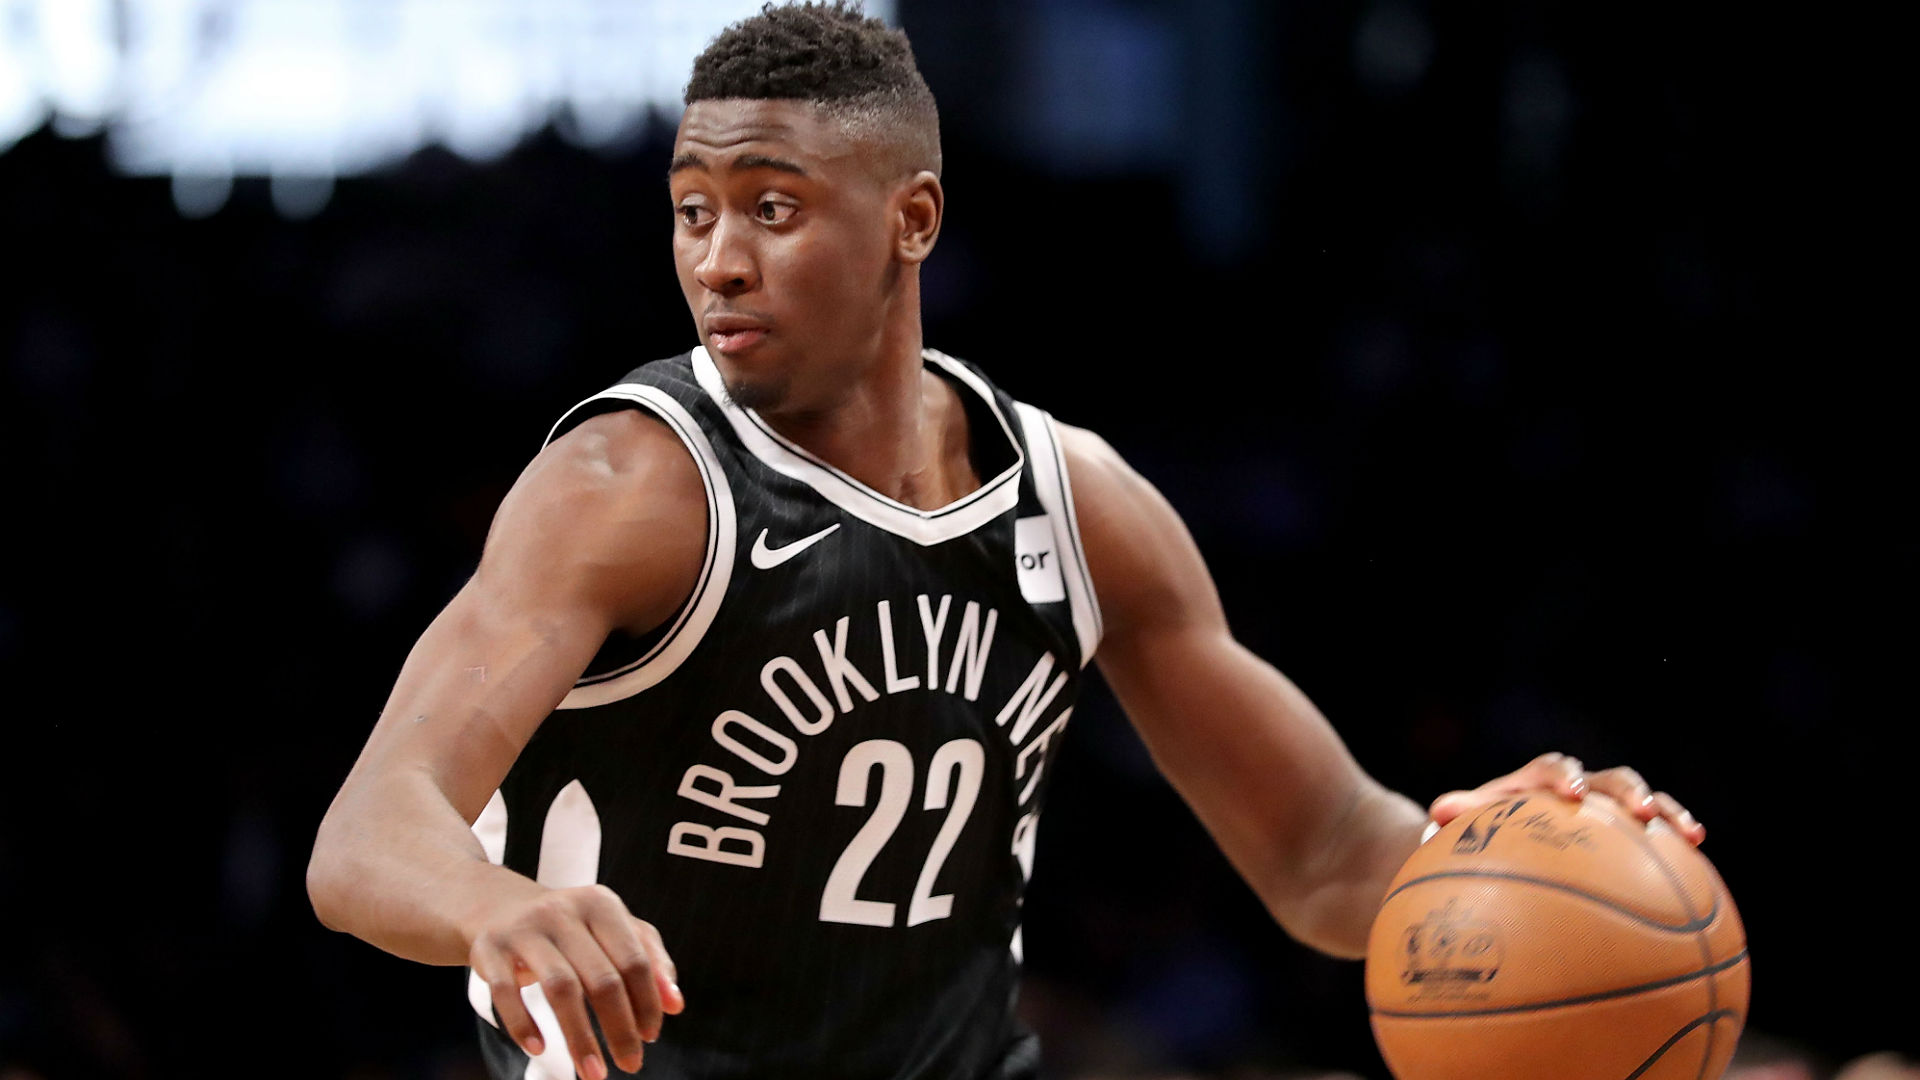 National Basketball Association  world rallies around Caris LeVert after gruesome injury